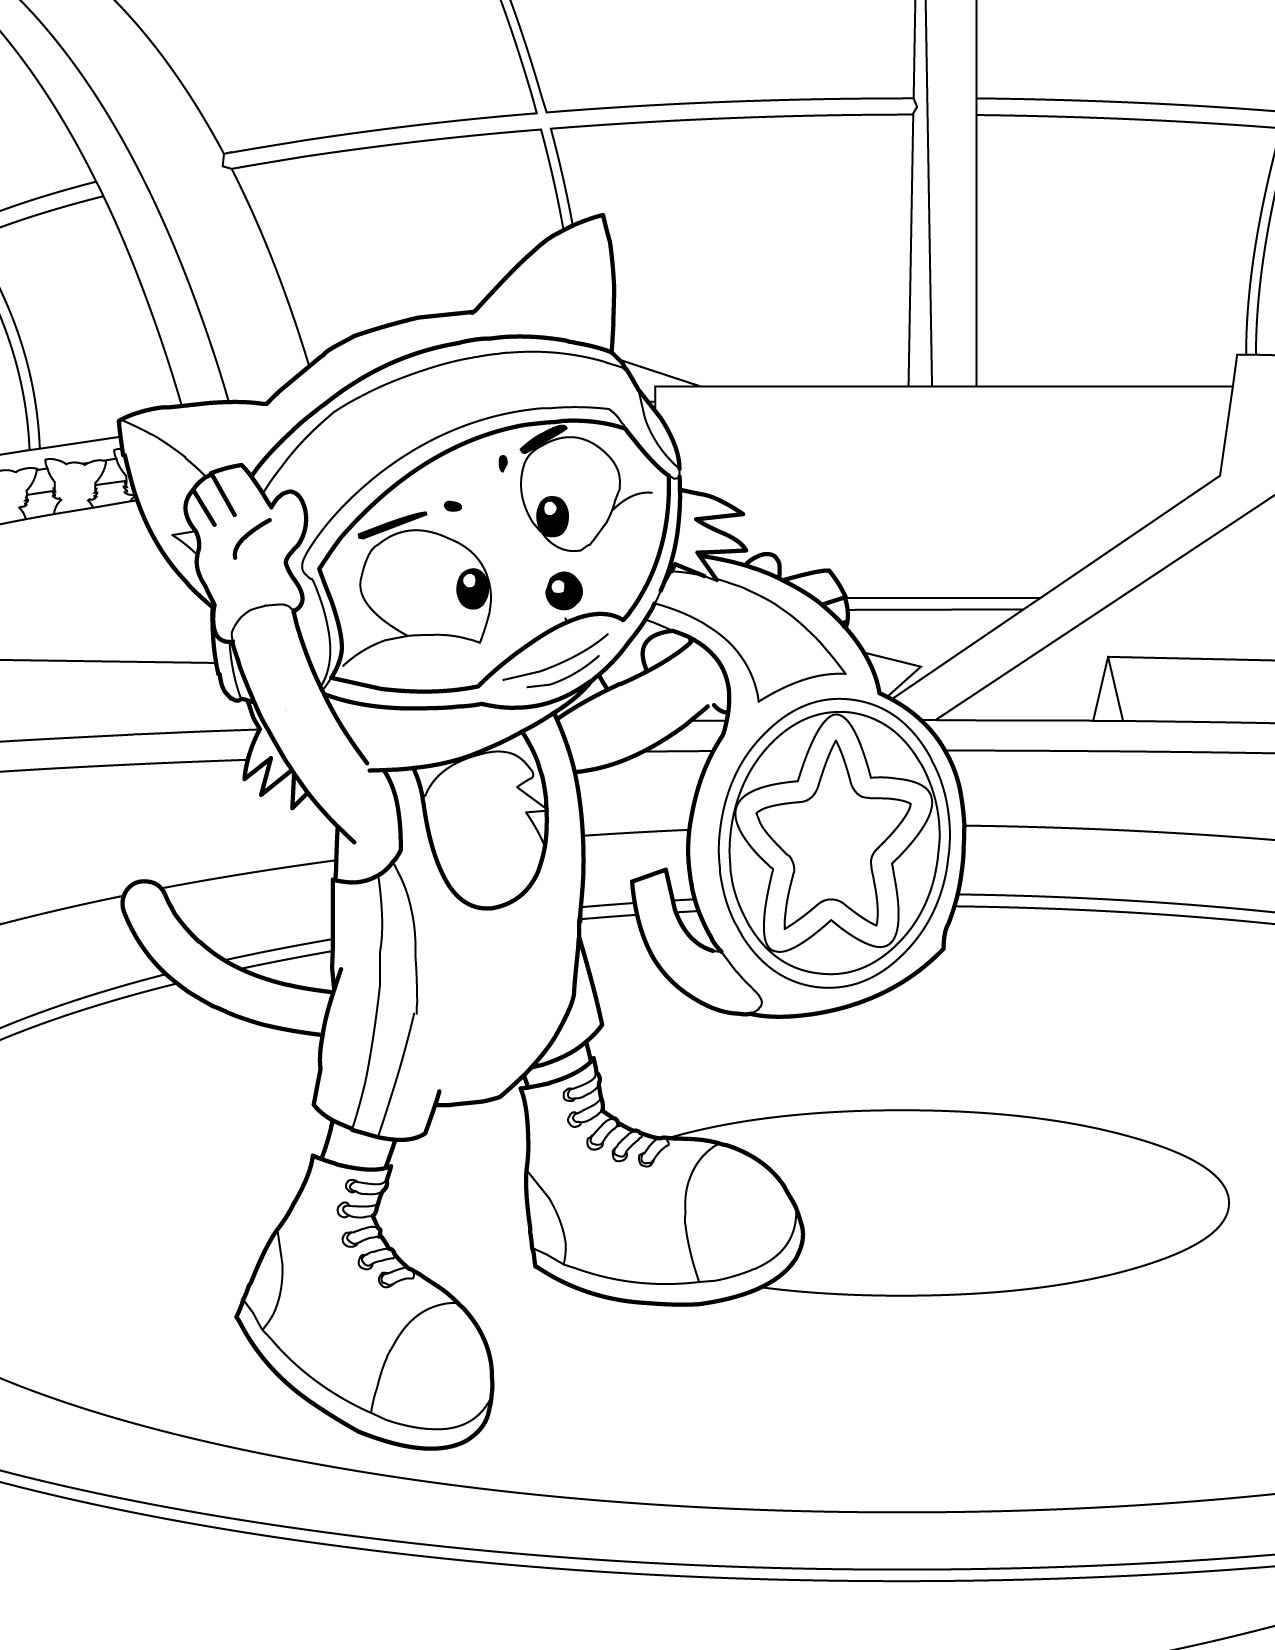 wwe coloring pages printable - wrestling coloring pages for kids coloring home